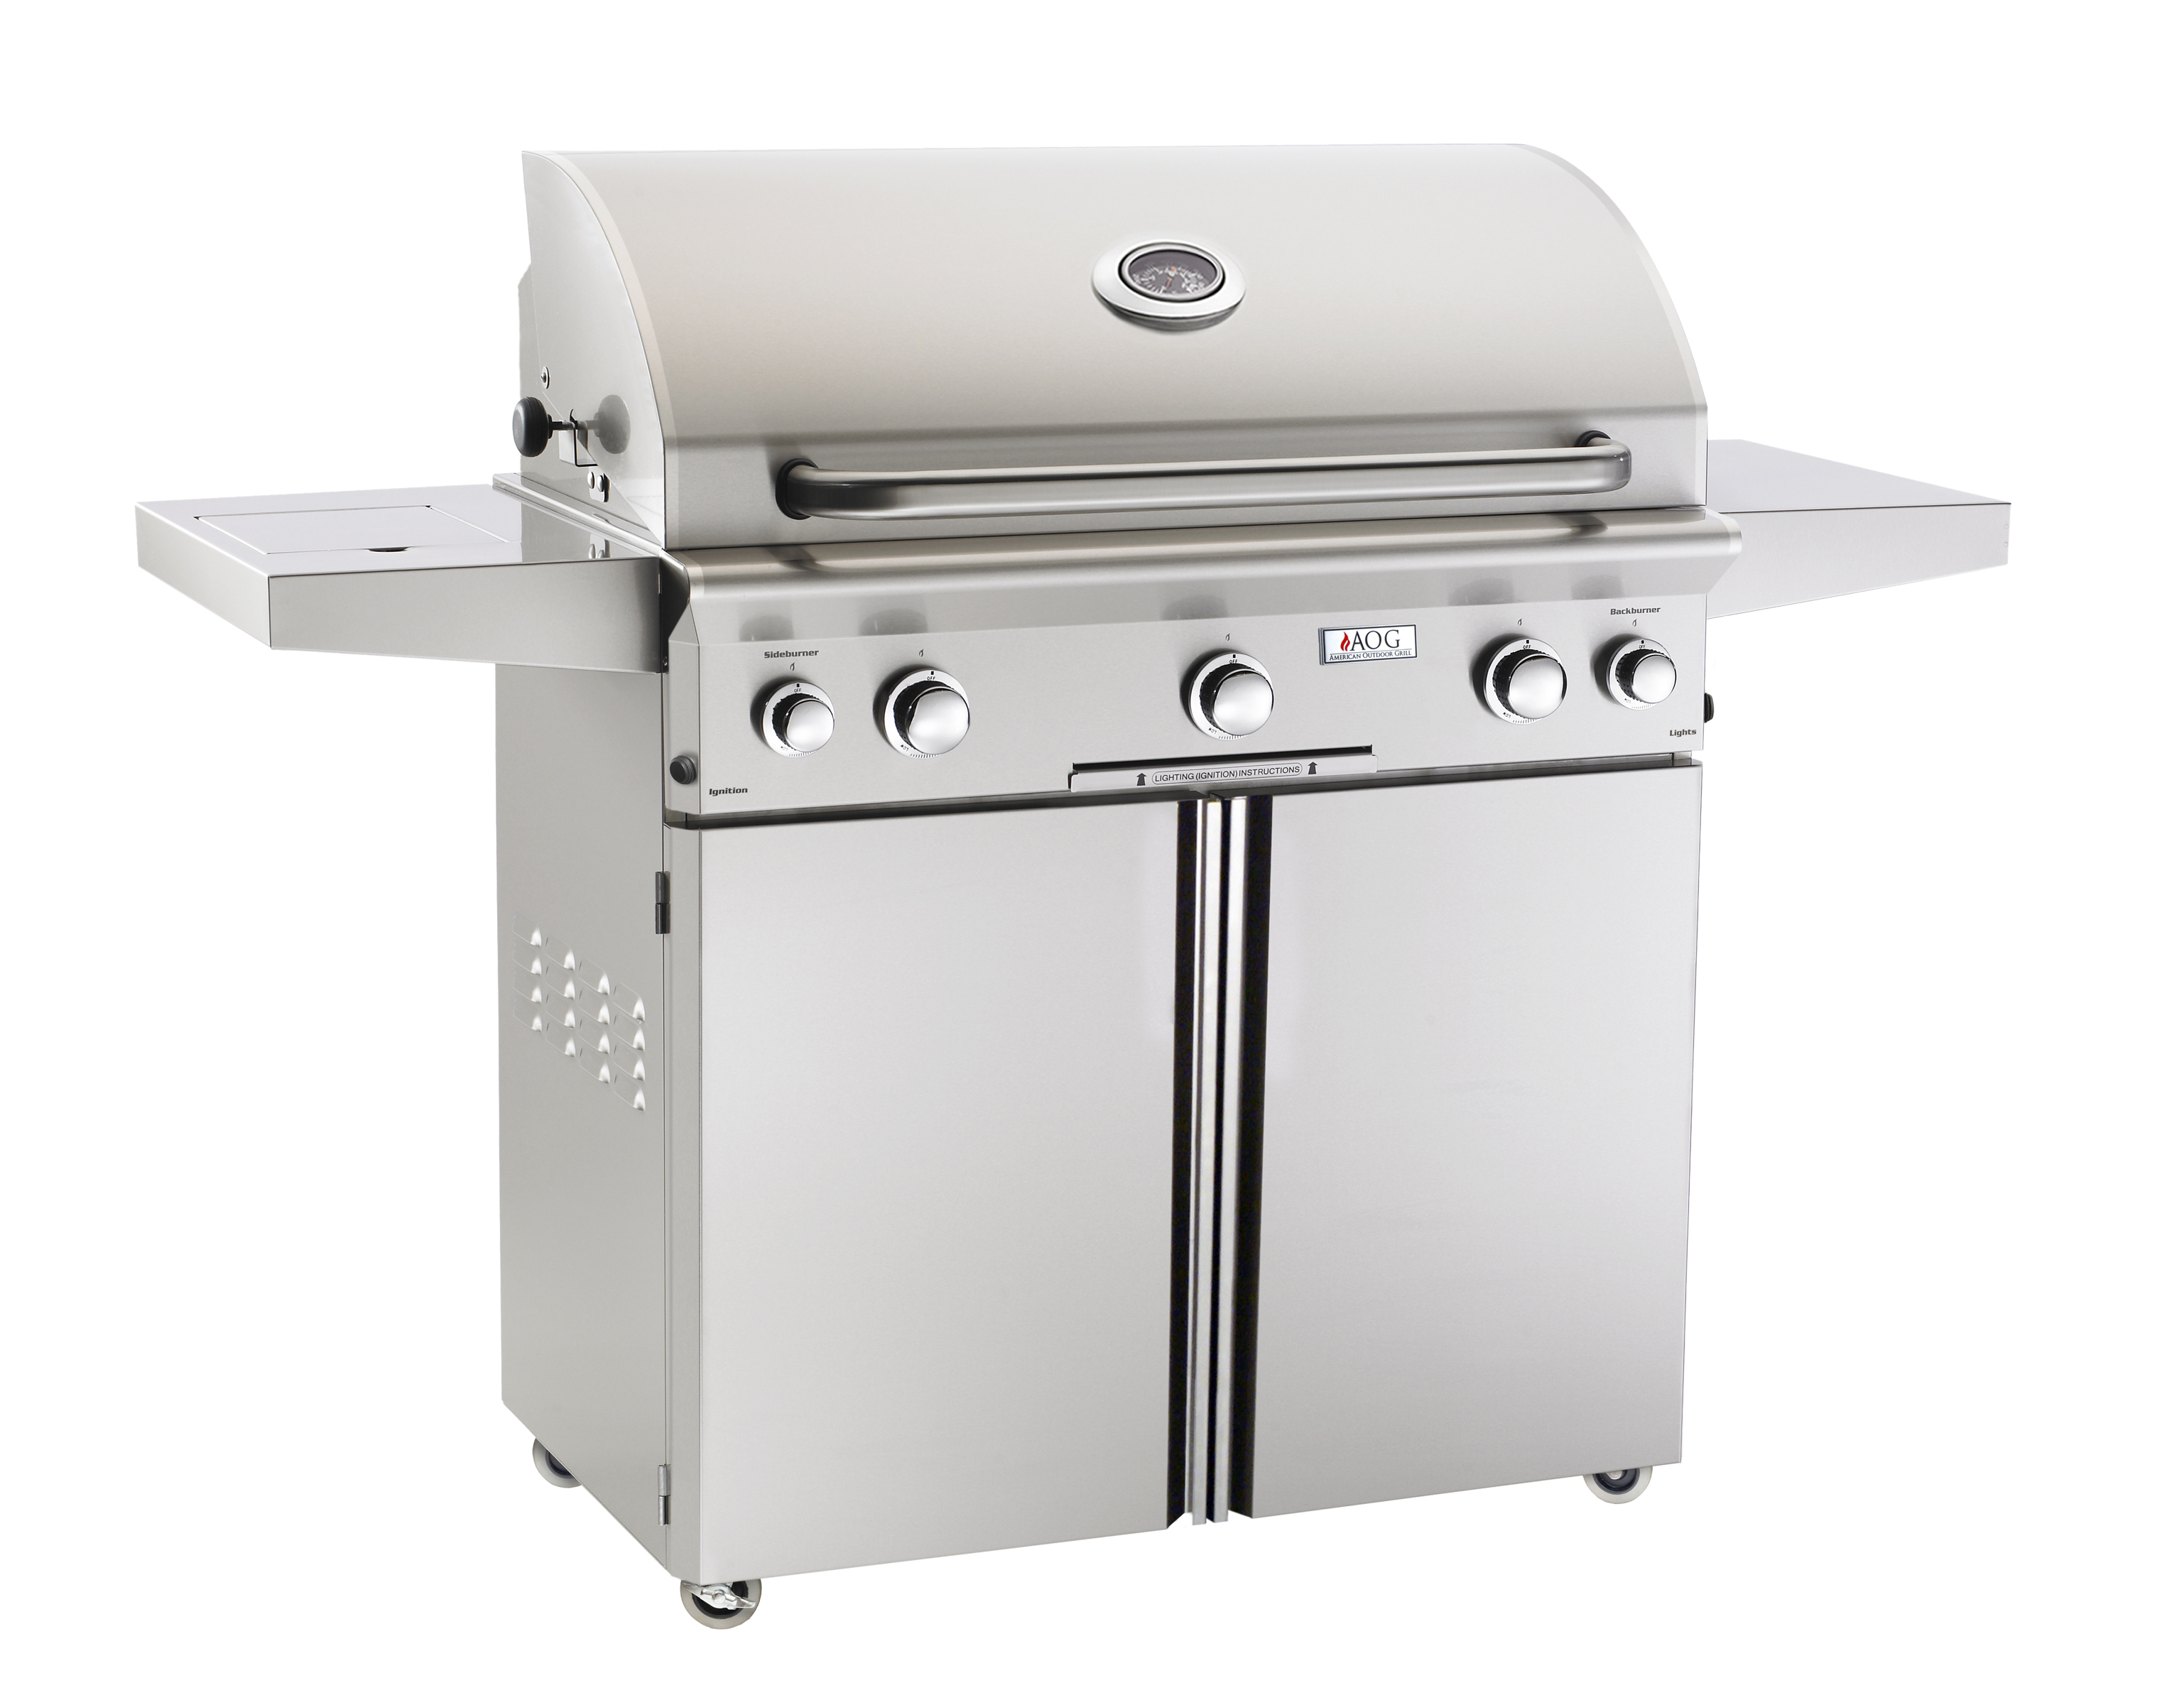 aog-36pcl-36-l-series-portable-grill-closed.jpg